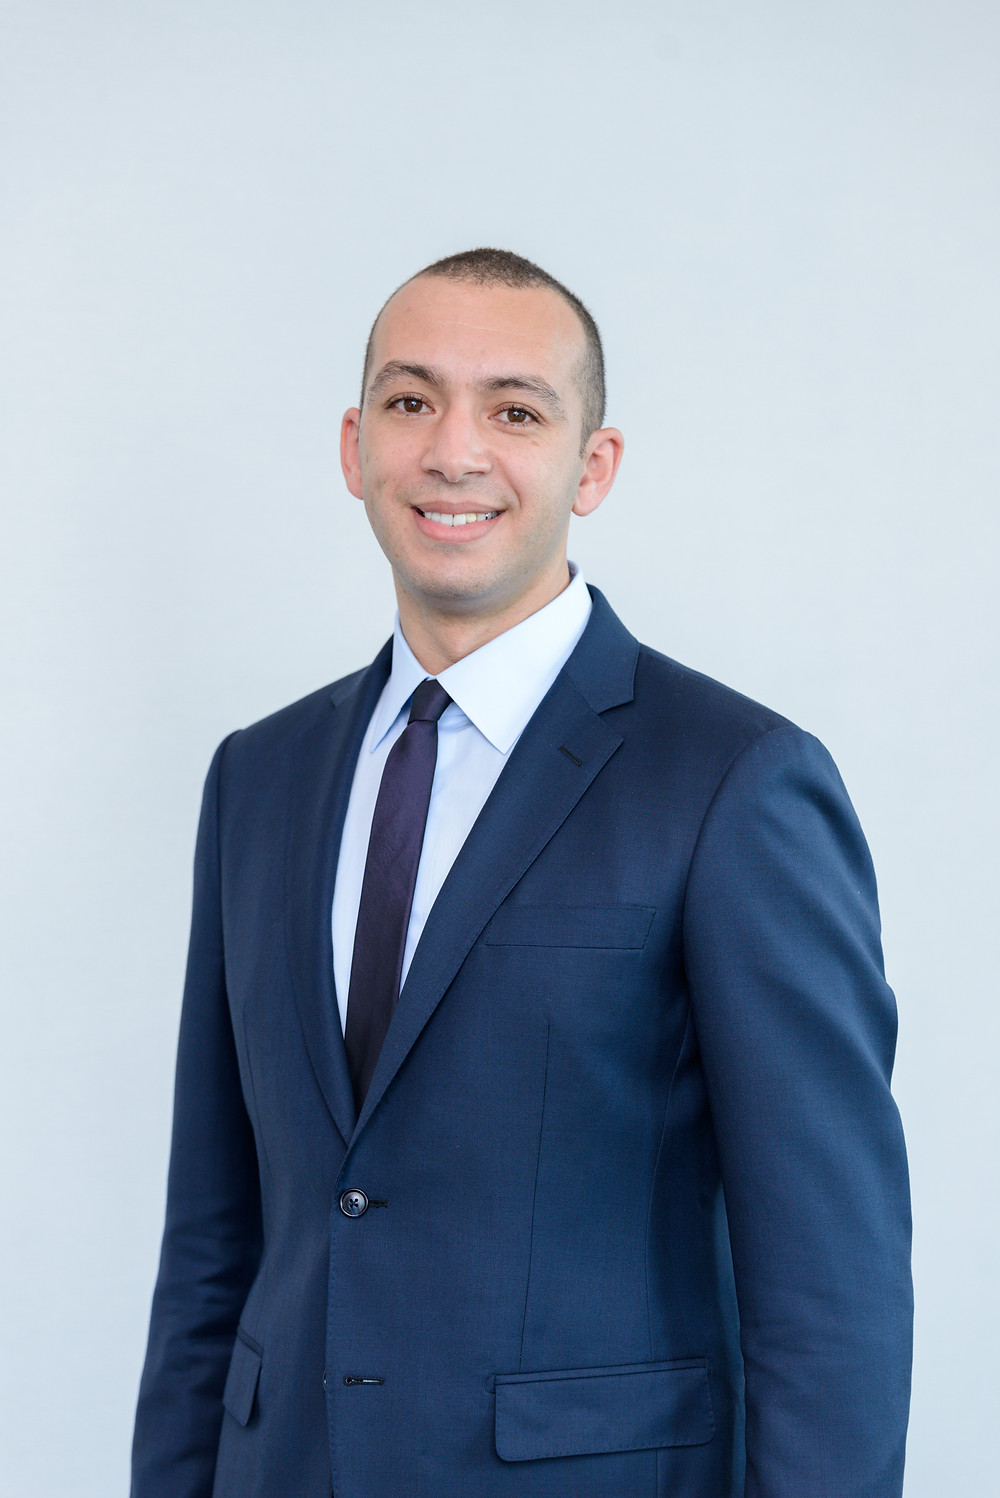 Adil Driouech Senior director of the technology, digital services, and internal IT teams at RGF Executive Search Japan